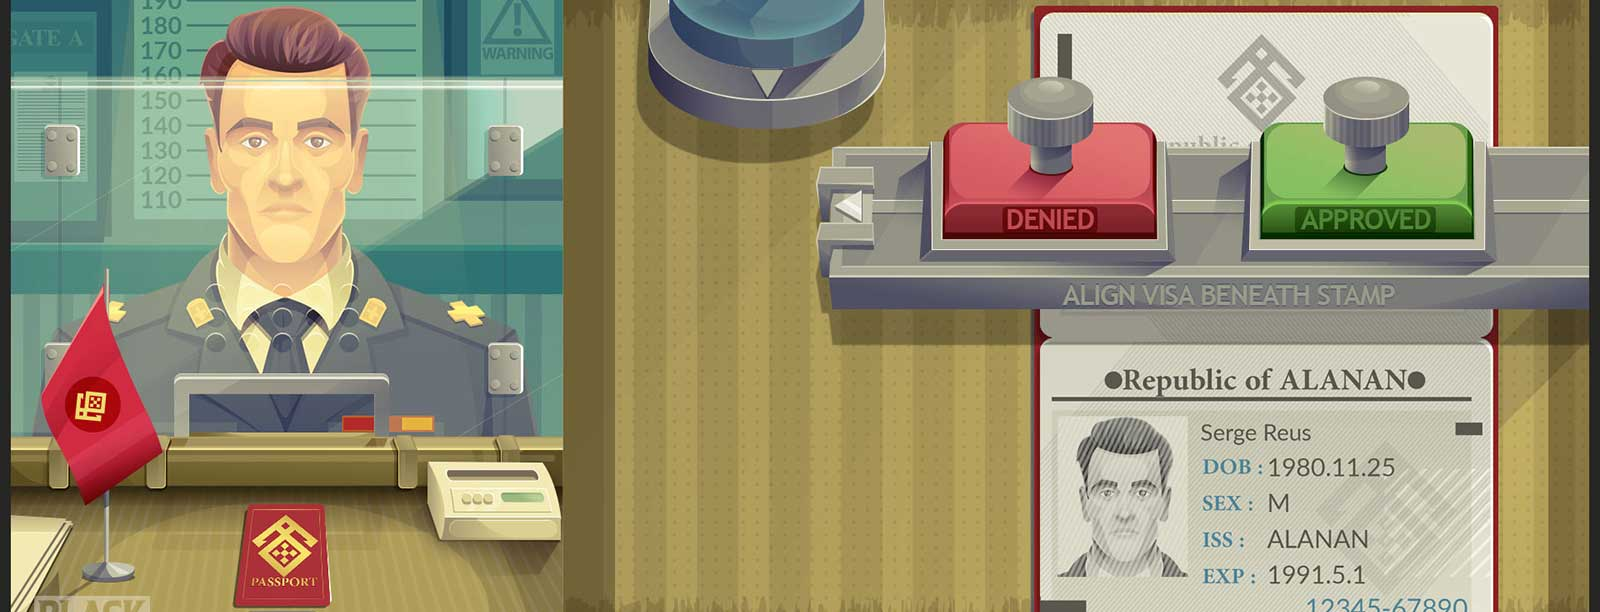 10 Games Like Papers Please for Android (Updated 2021)